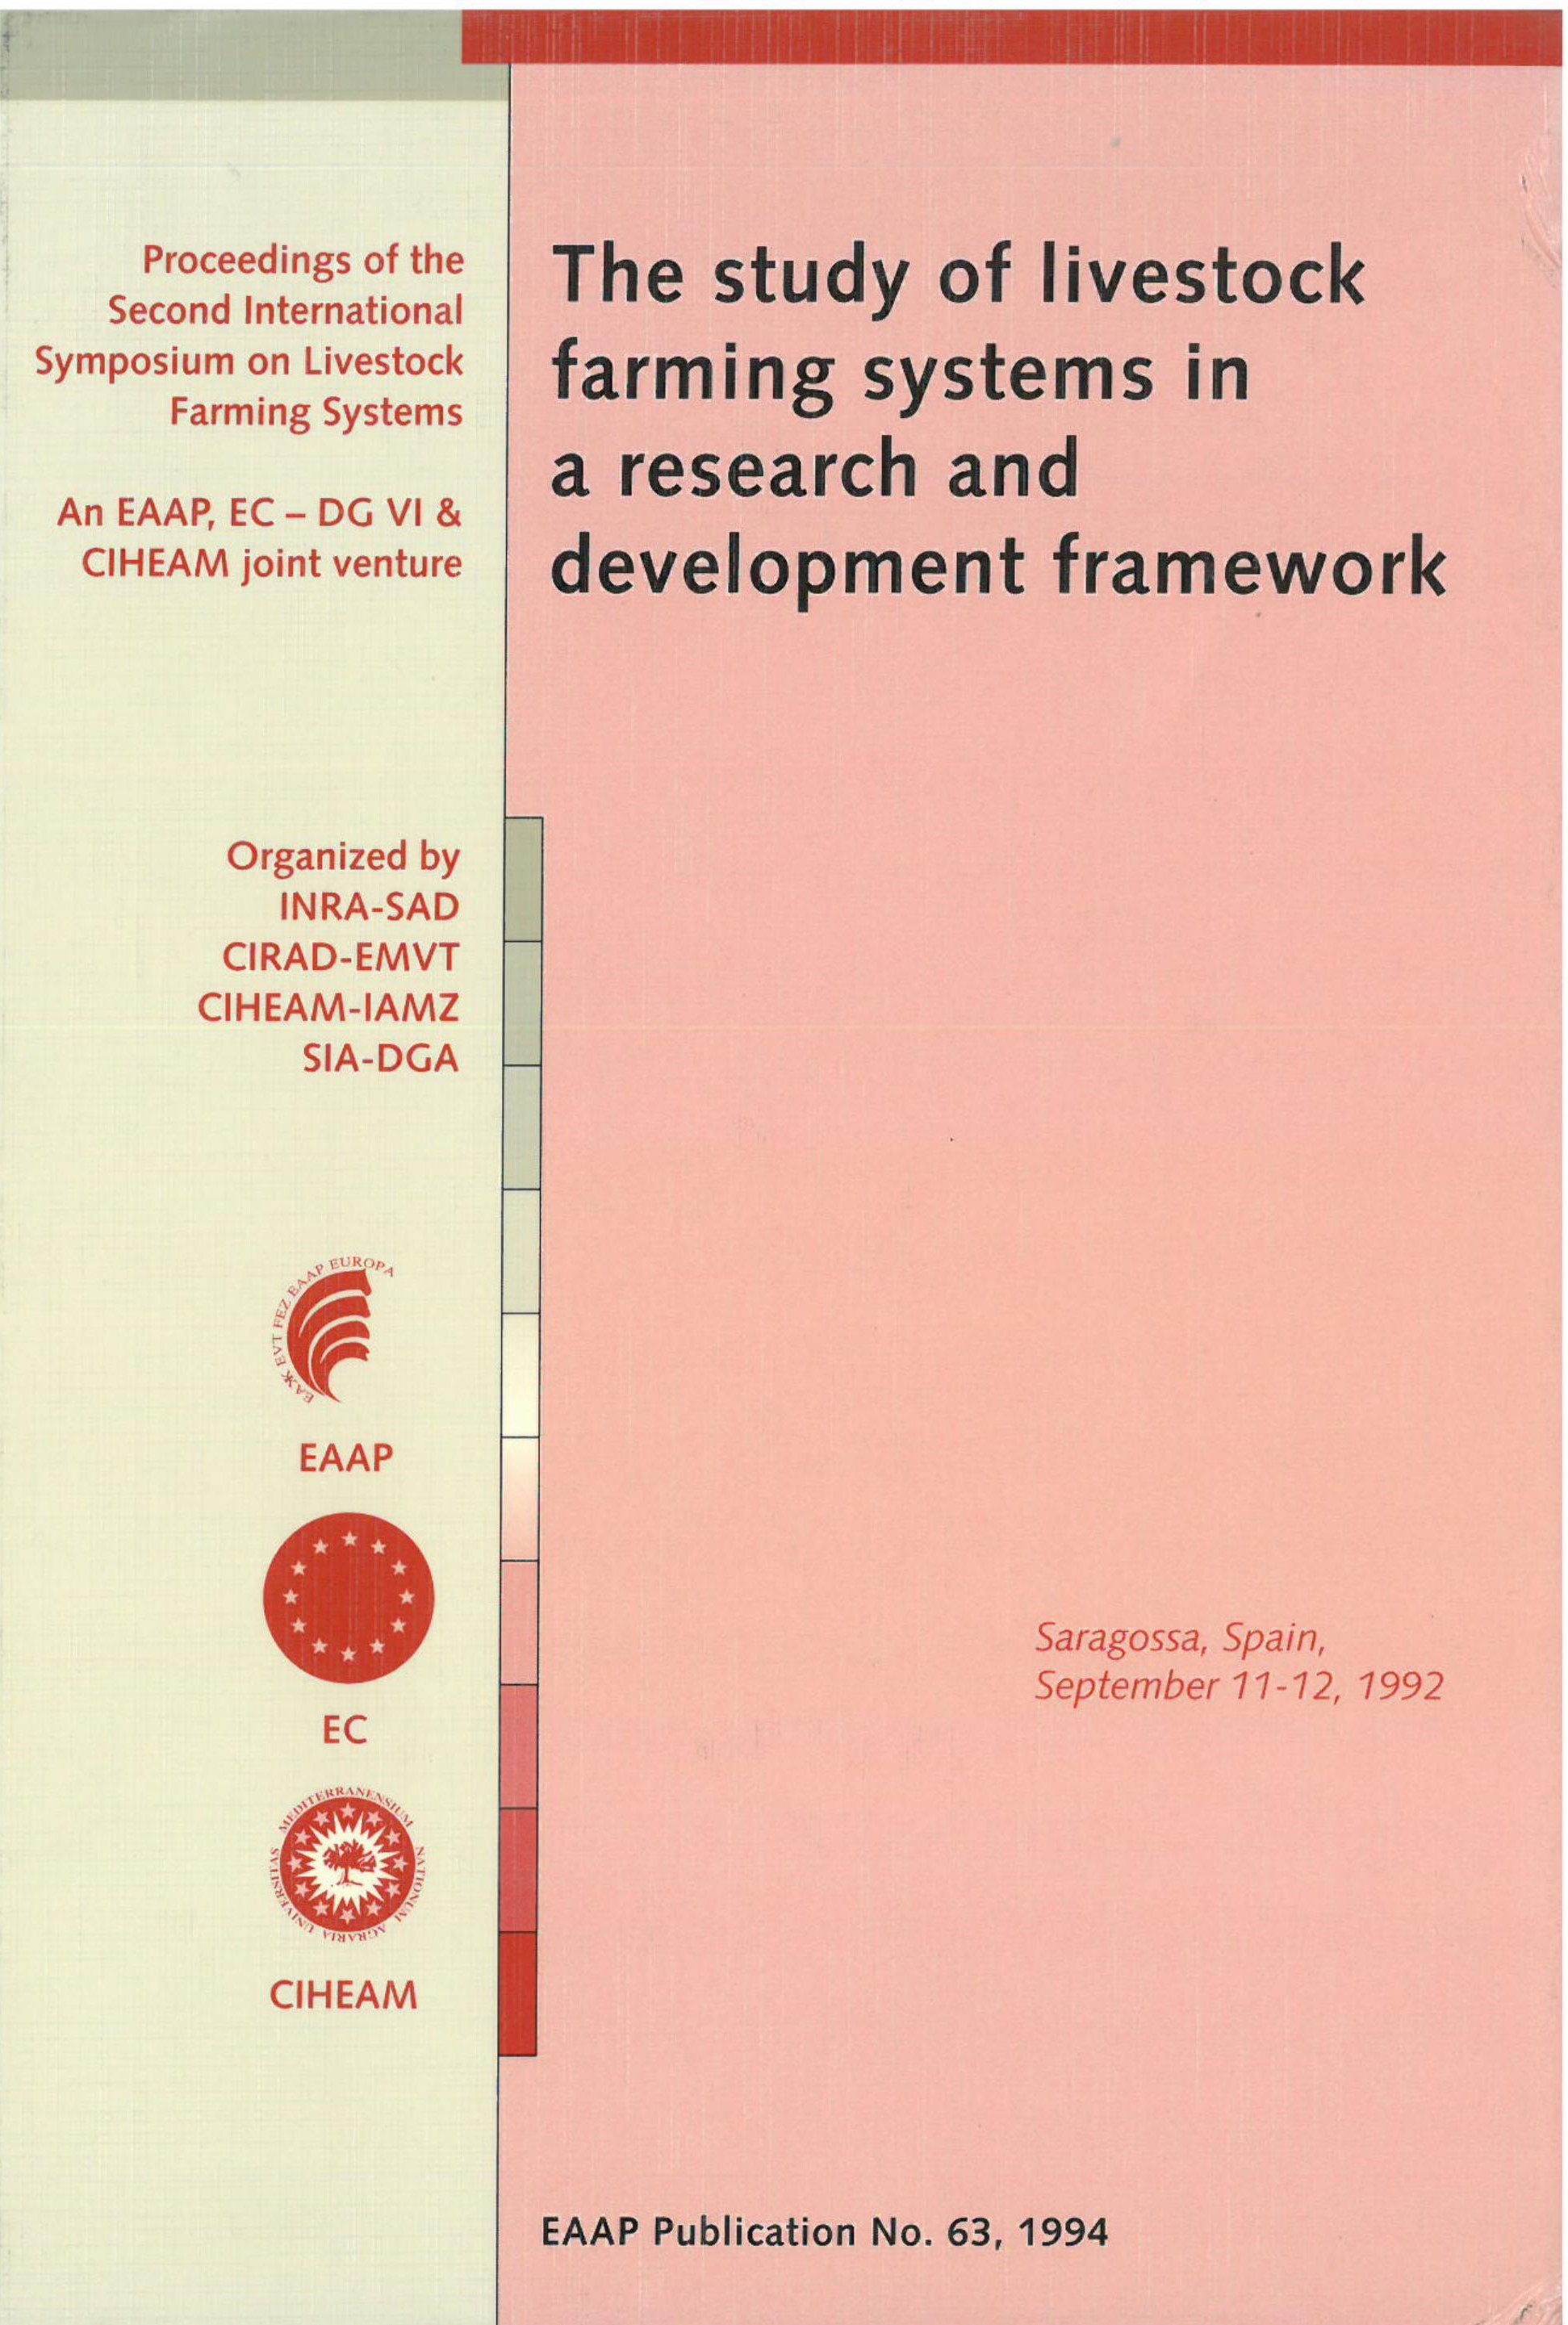 The study of livestock farming systems in a research and development framework